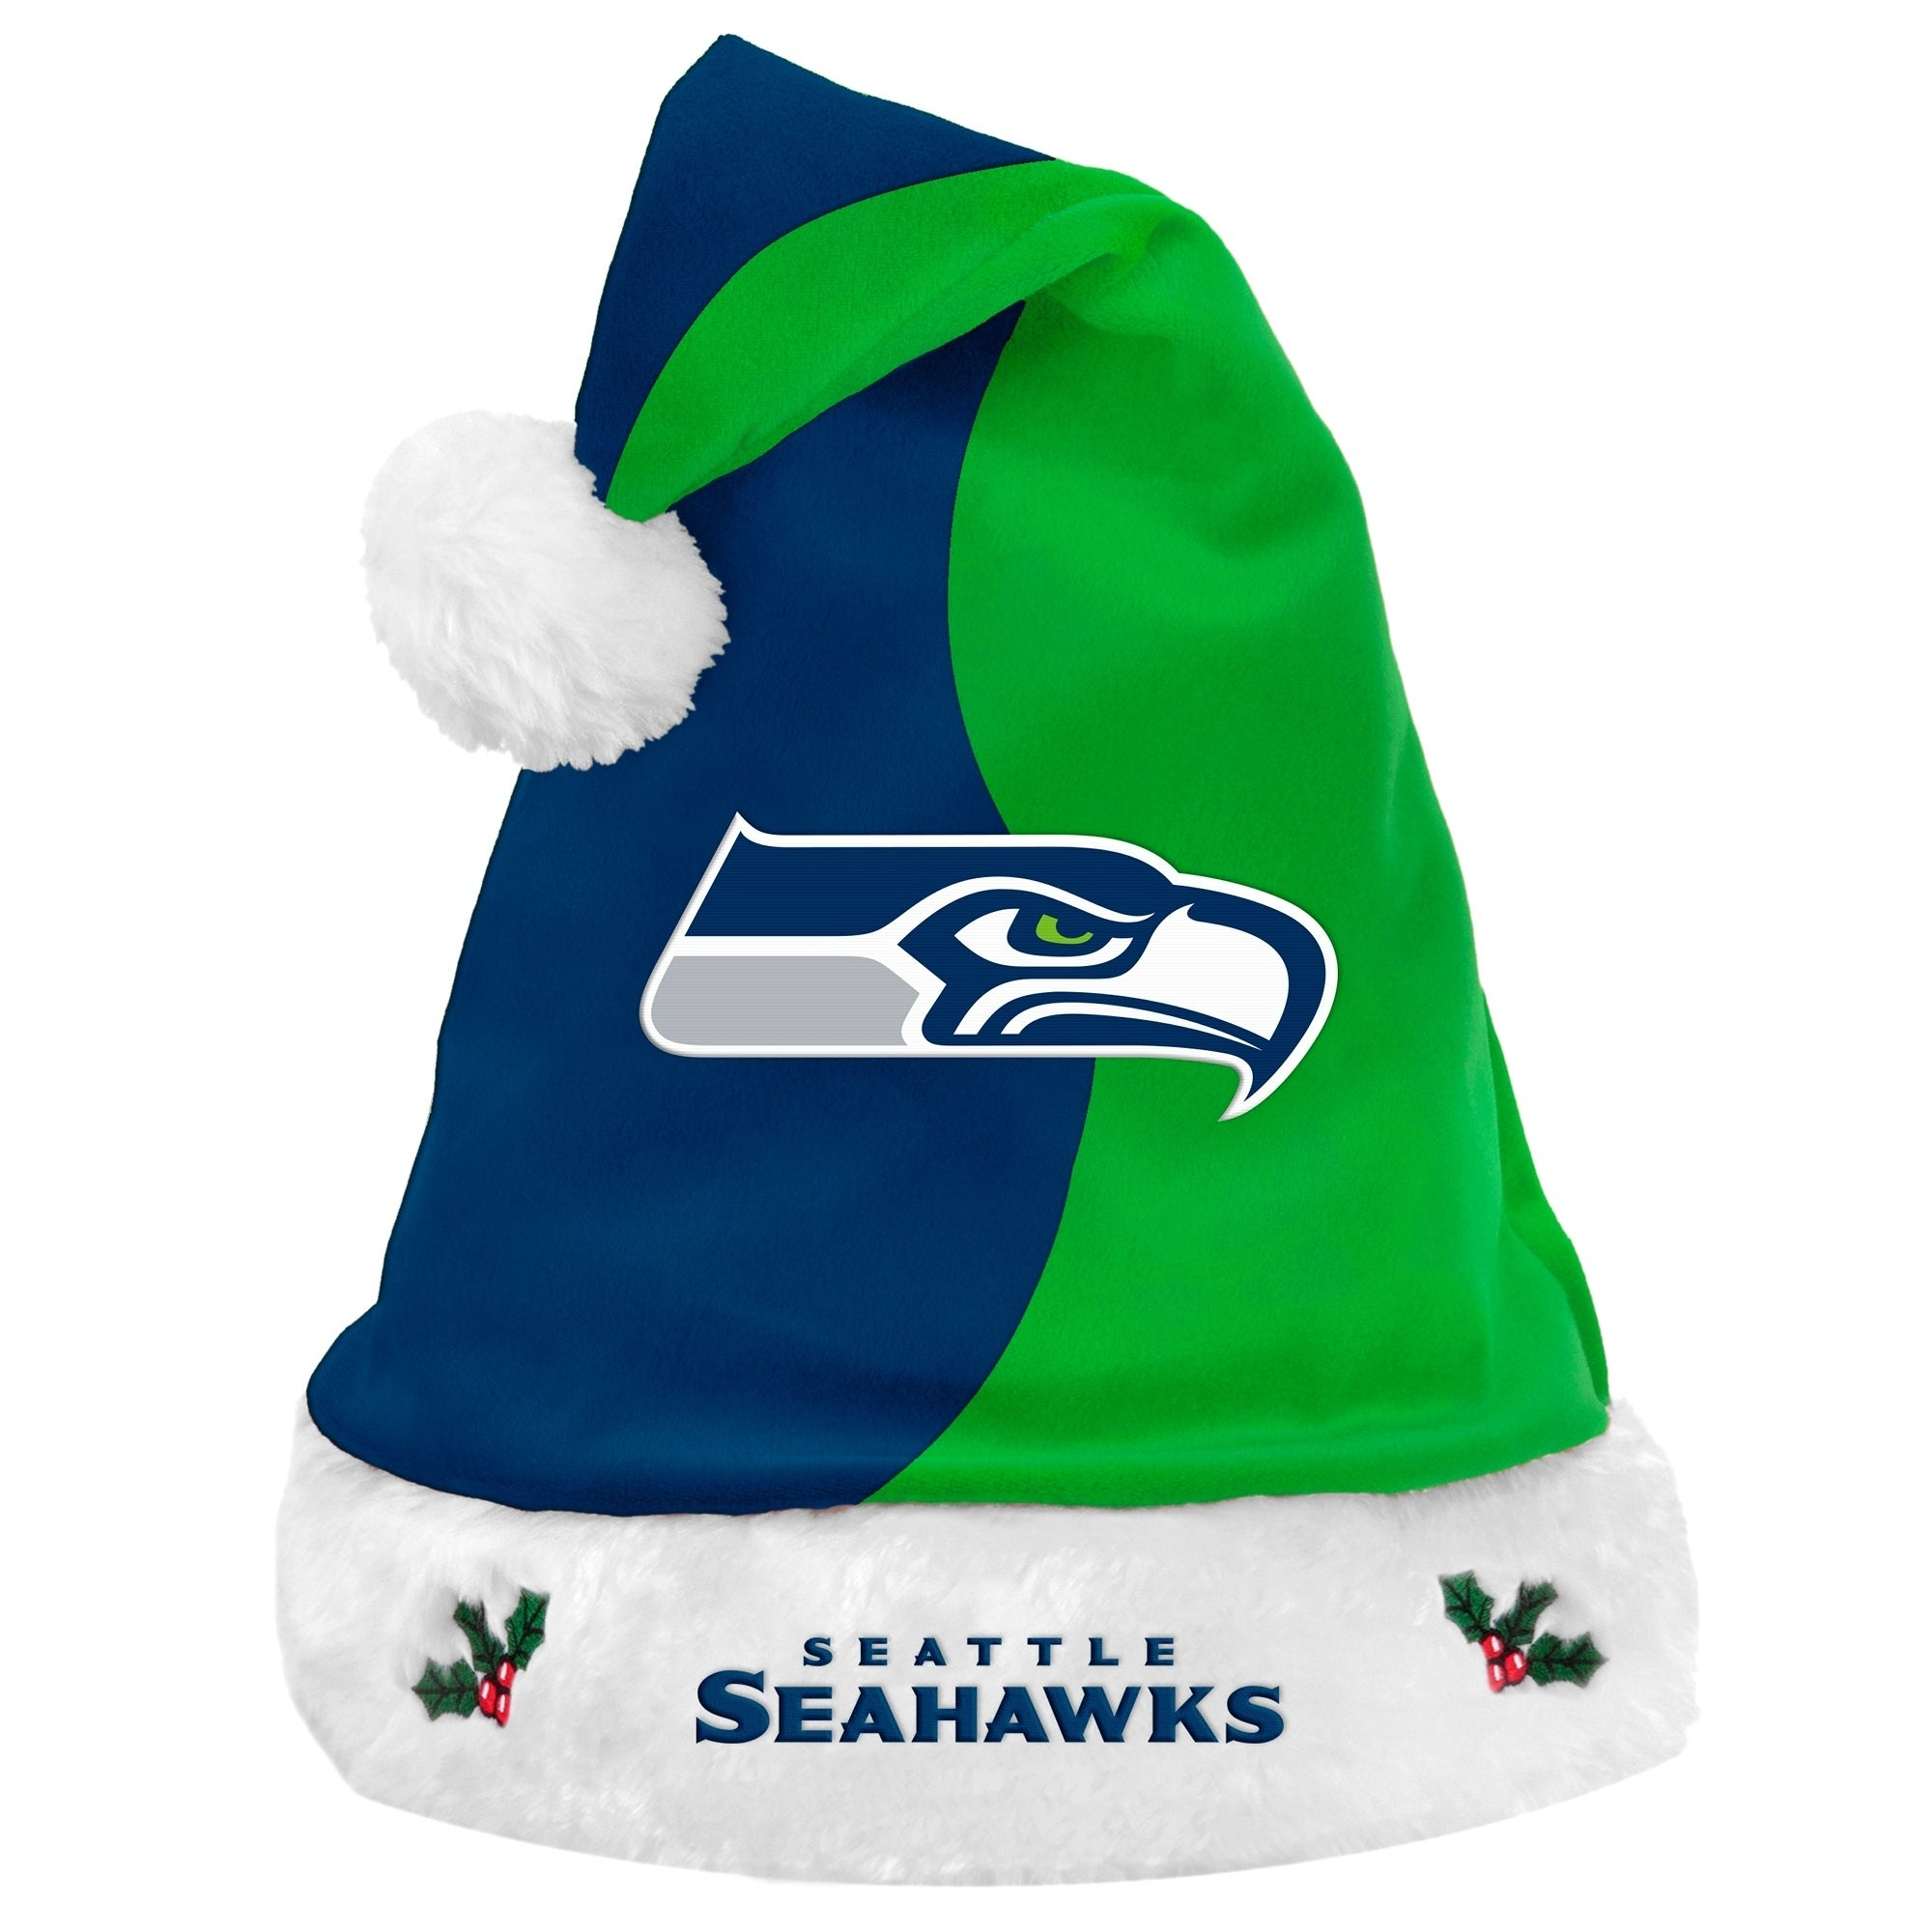 online store 3bbc6 120dd Shop Seattle Seahawks NFL 17-inch Santa Hat - multi - Free Shipping On Orders  Over  45 - Overstock - 23502101